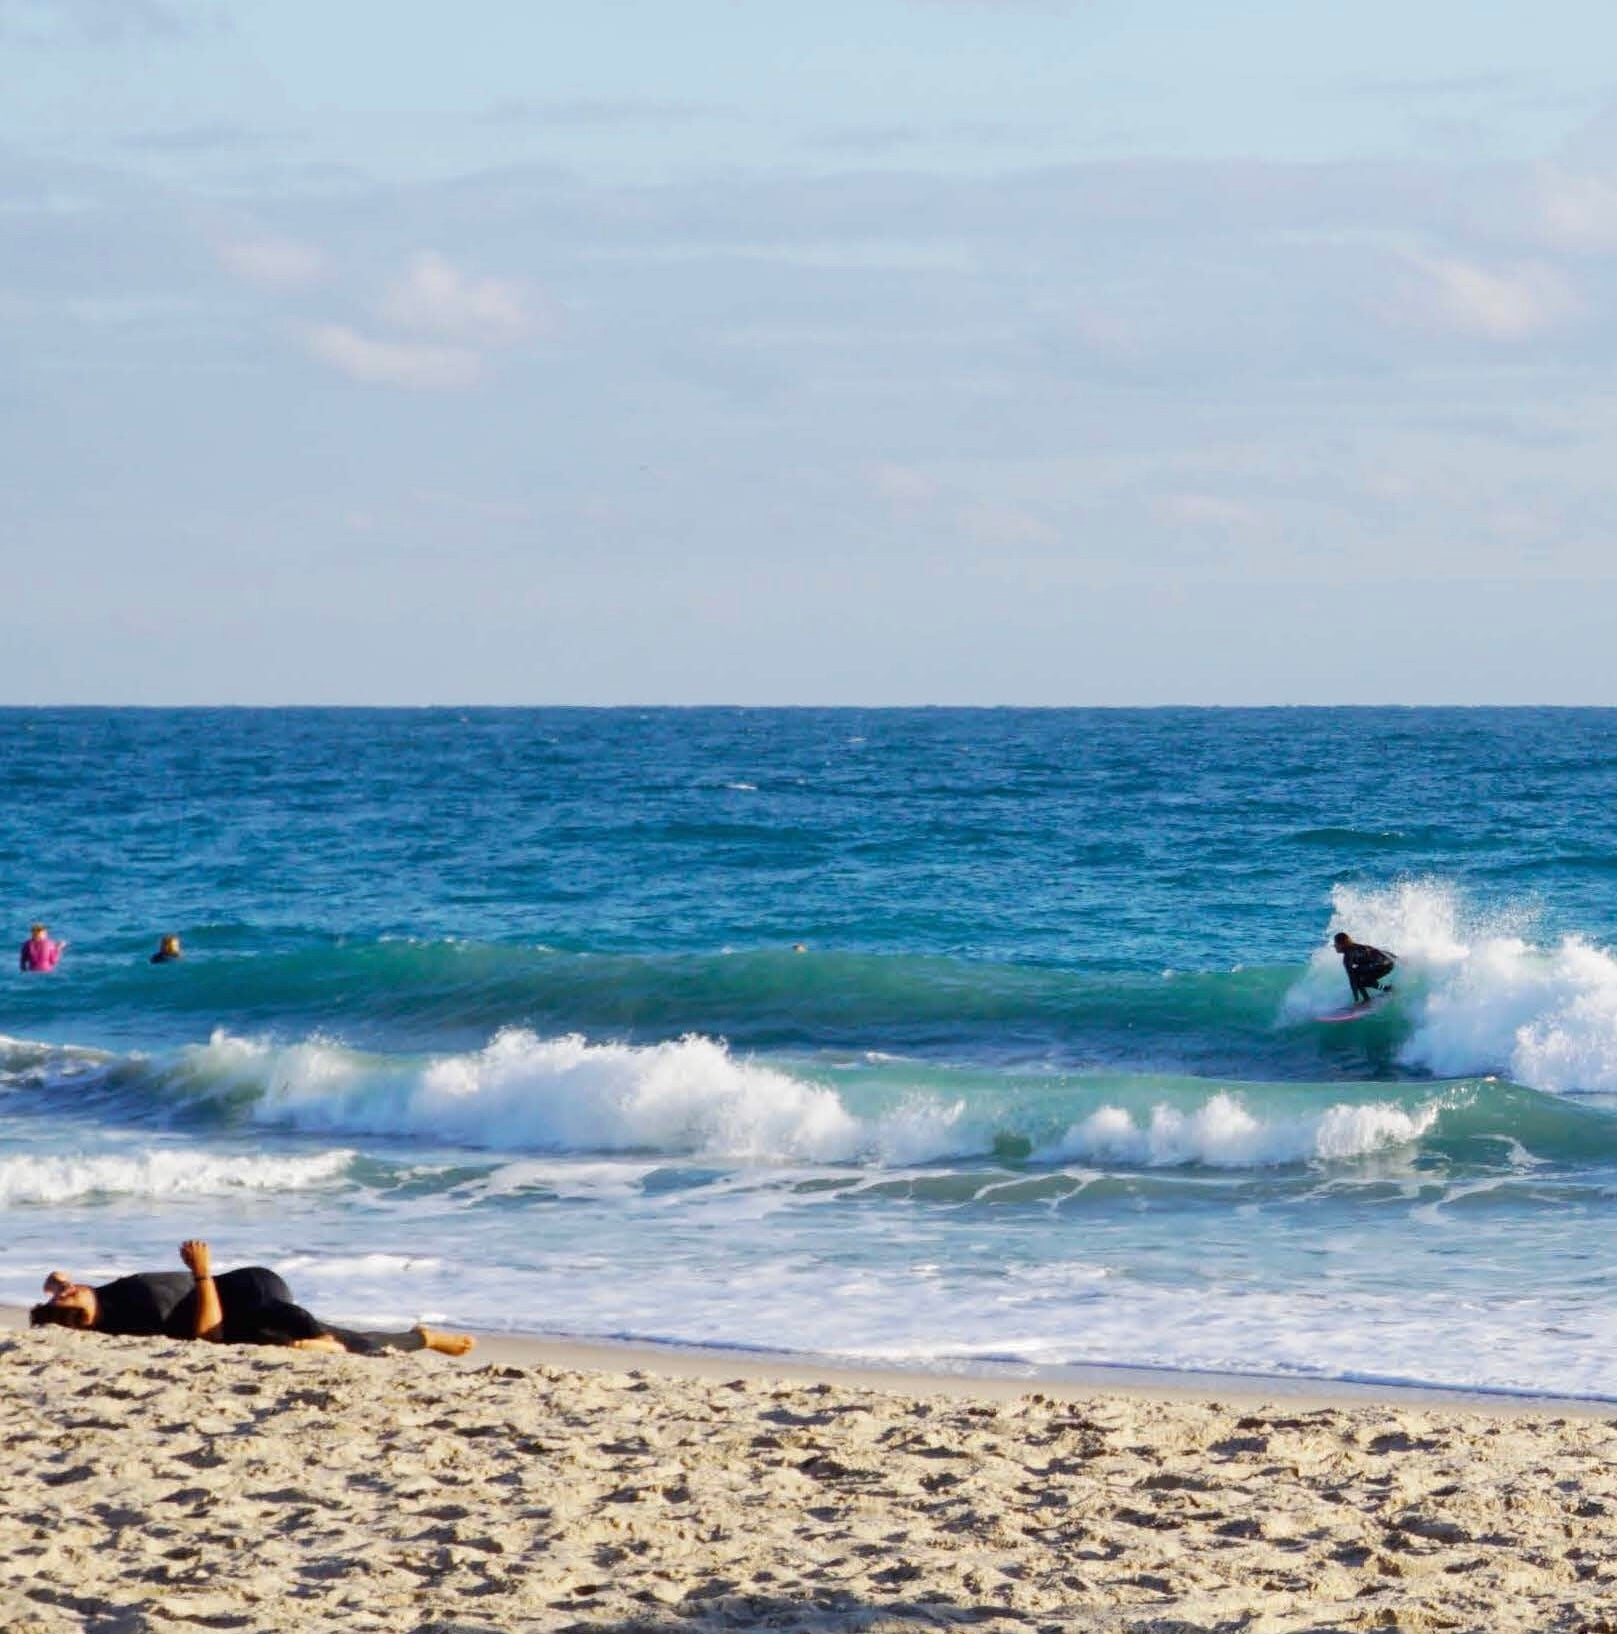 WSL Surfers Warm-Up at Florida Pro Surf sponsored by OMNA Inc. Tourniquet Surfboard Leashes